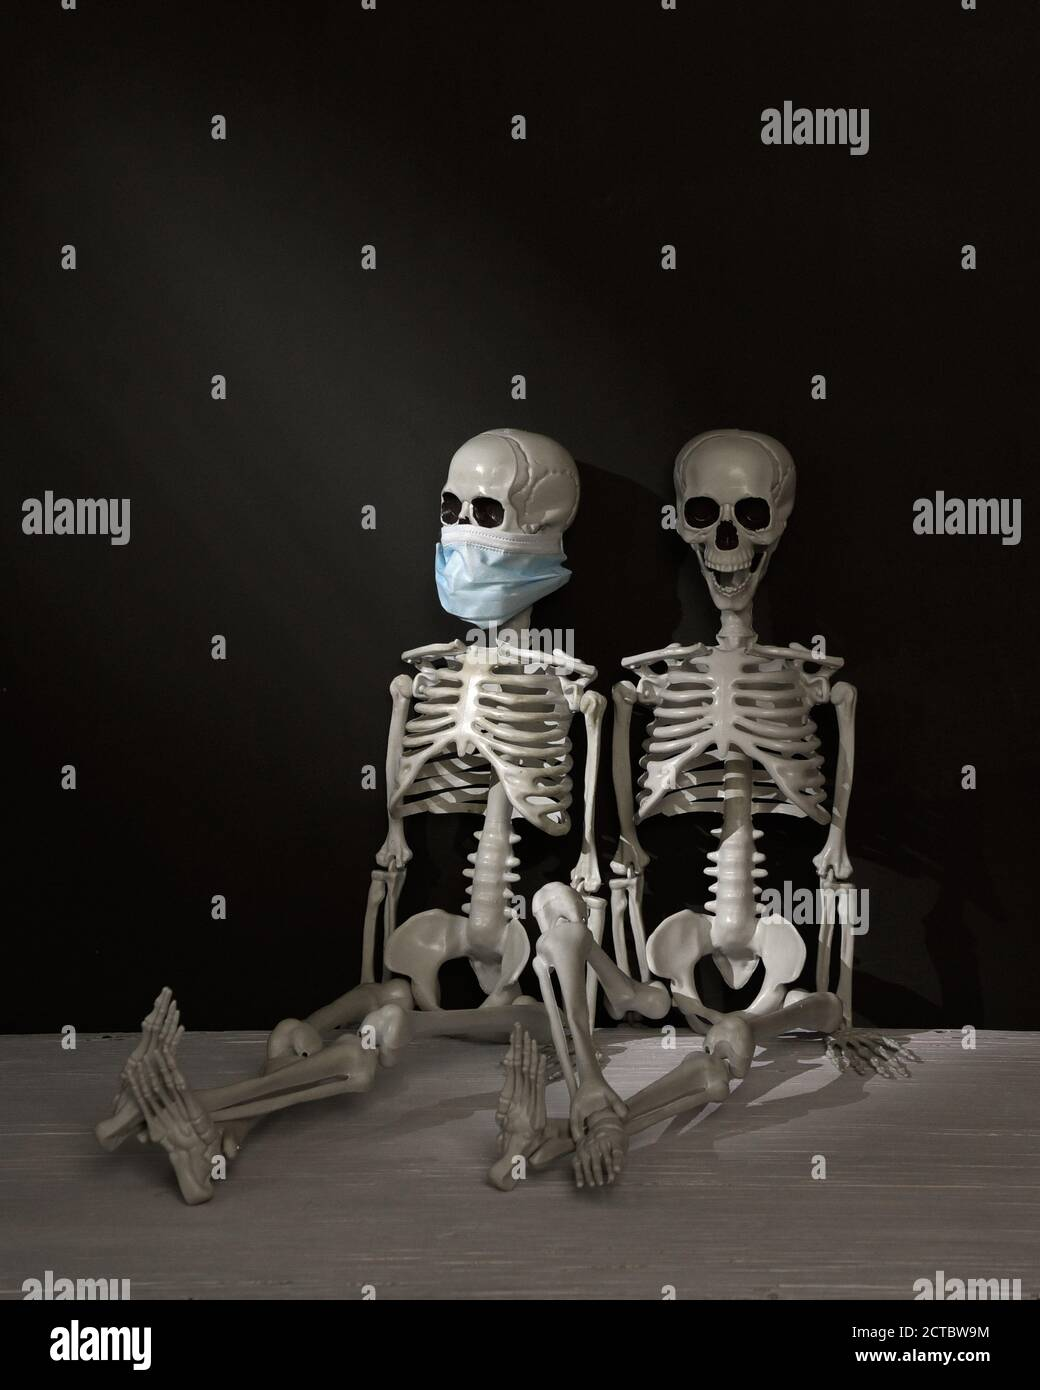 Two Skeletons are sitting in a dark room. One is wearing a mask and the other isn't for a dark humor anti mask concept during the covid 19 pandemic. Stock Photo